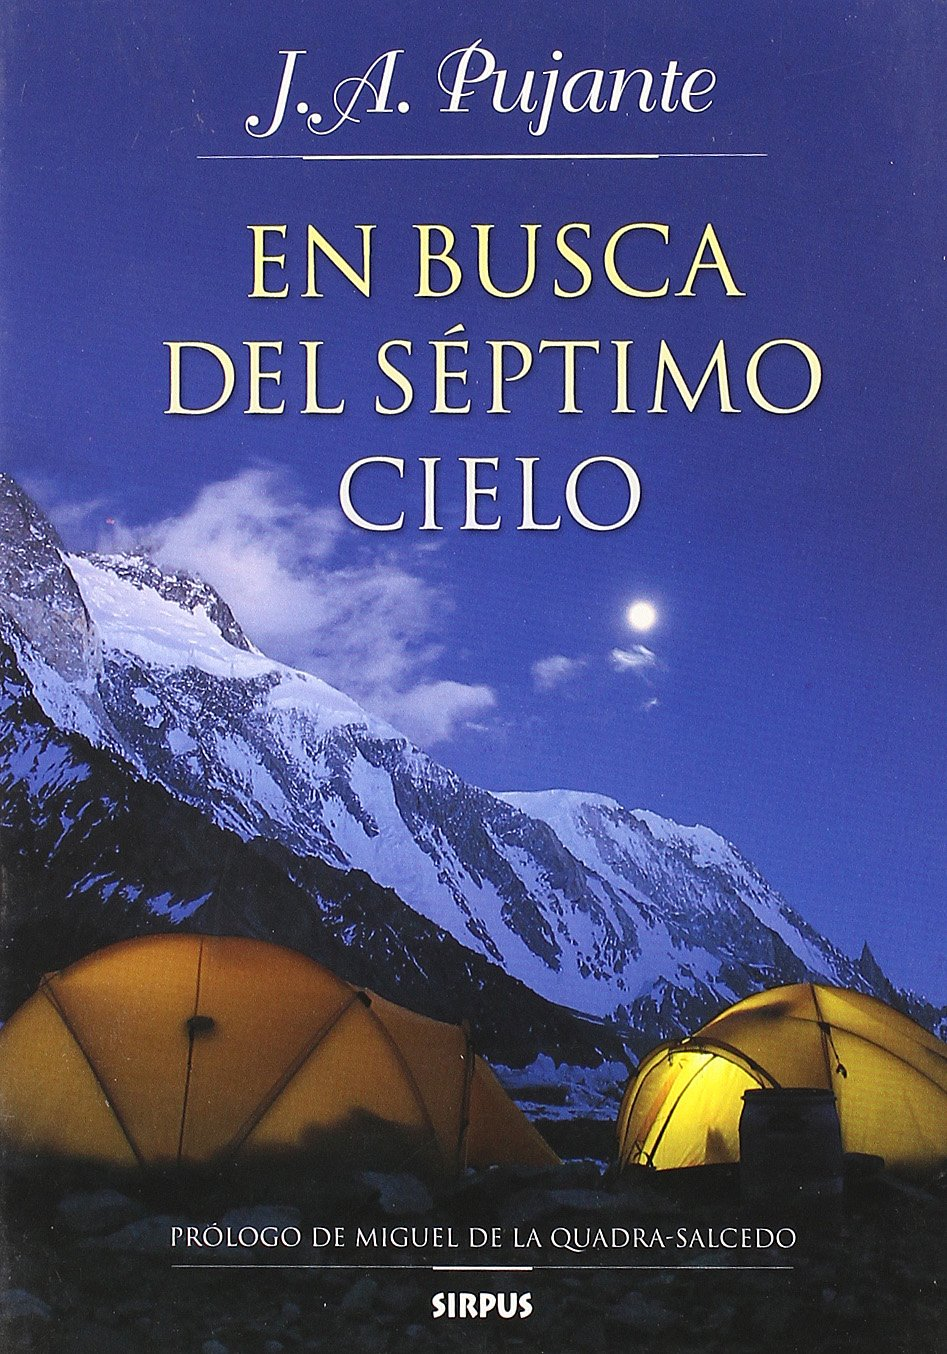 En busca del septimo cielo / In search of seventh heaven (Spanish Edition) by Zendrera Zariquley Editioral